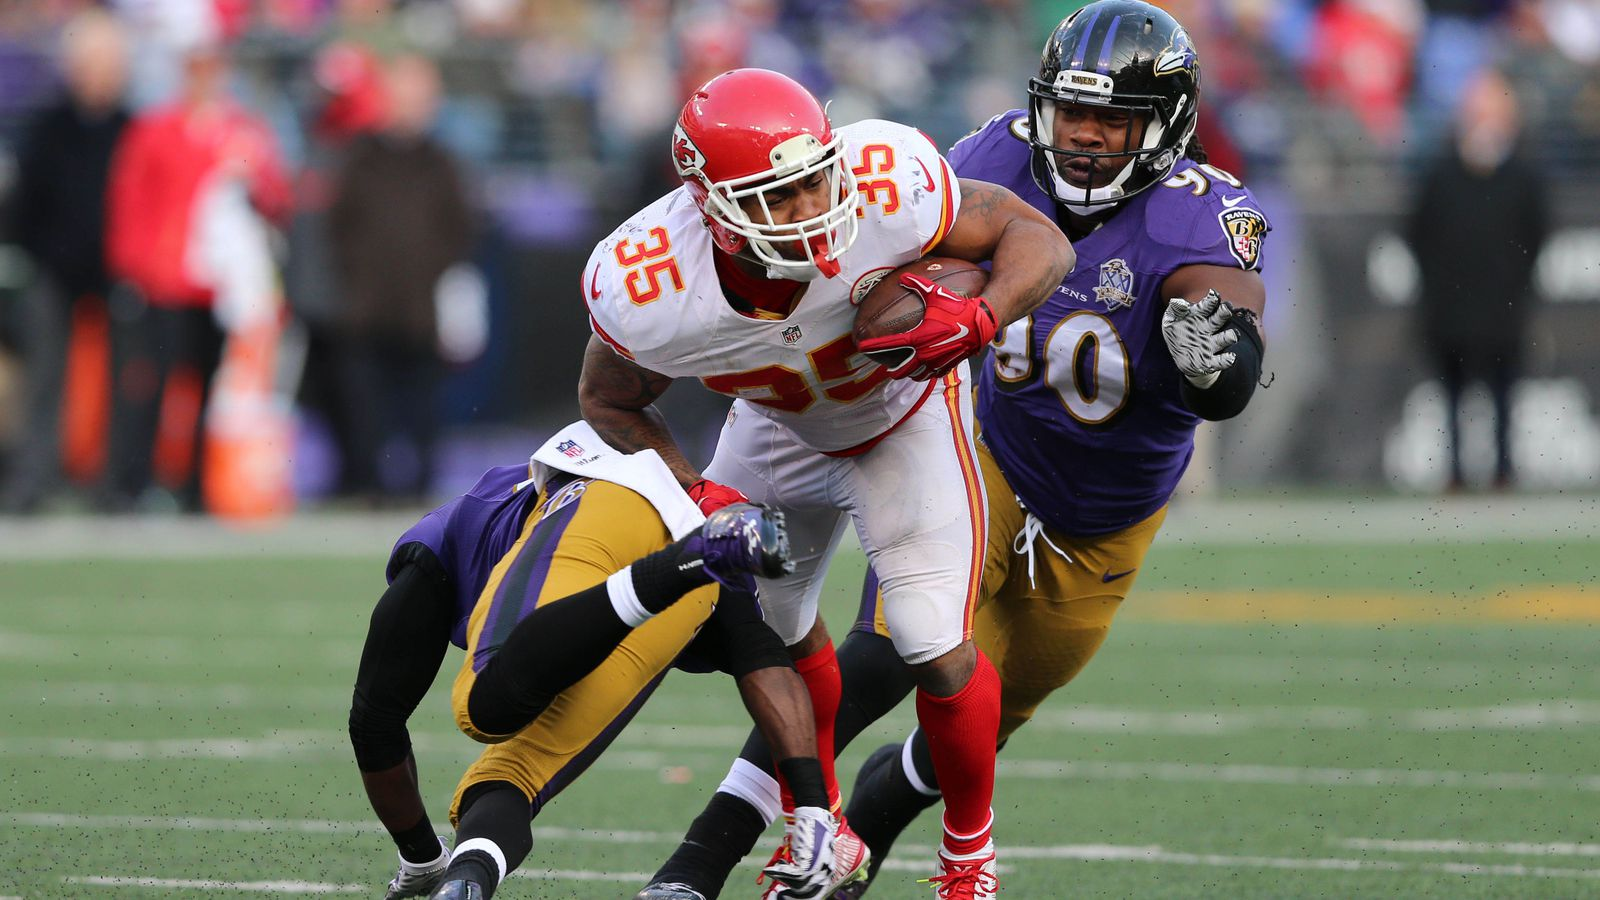 San Francisco 49ers 31 vs Baltimore Ravens 34 on February 3rd 2013 Full team and player stats and box score